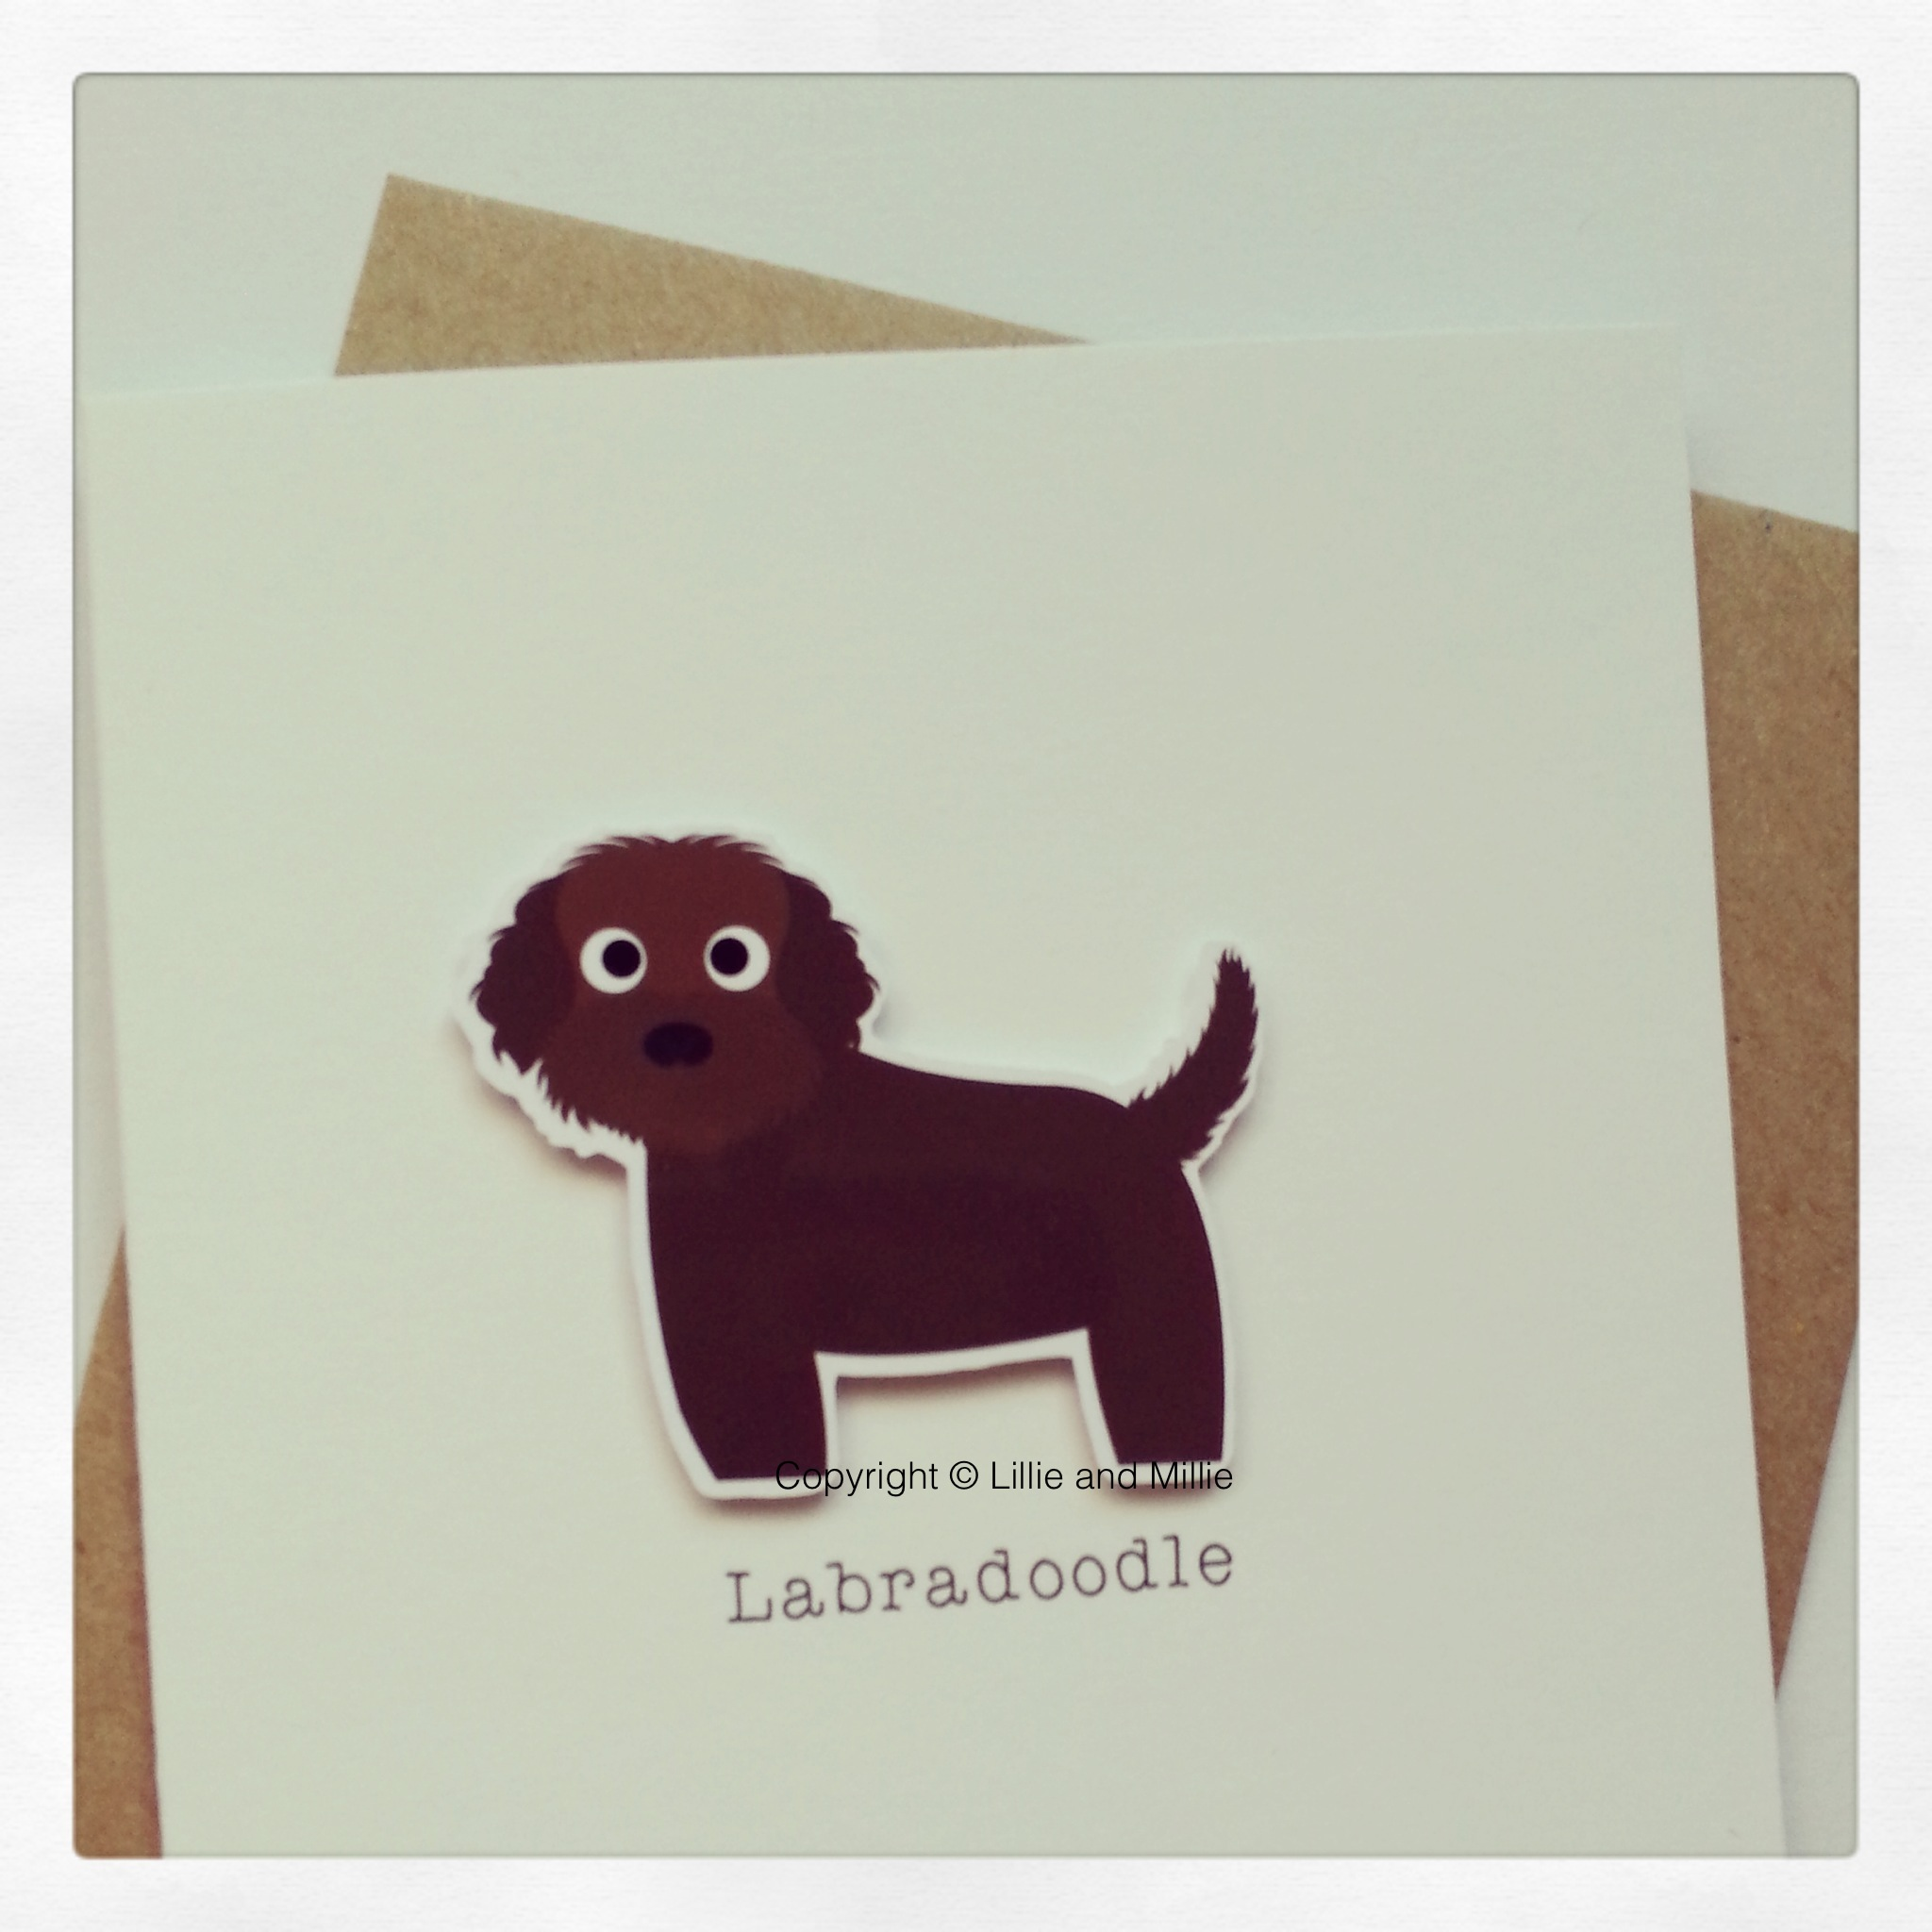 CUTE AND CUDDLY LABRADOODLE DOG GREETINGS CARD